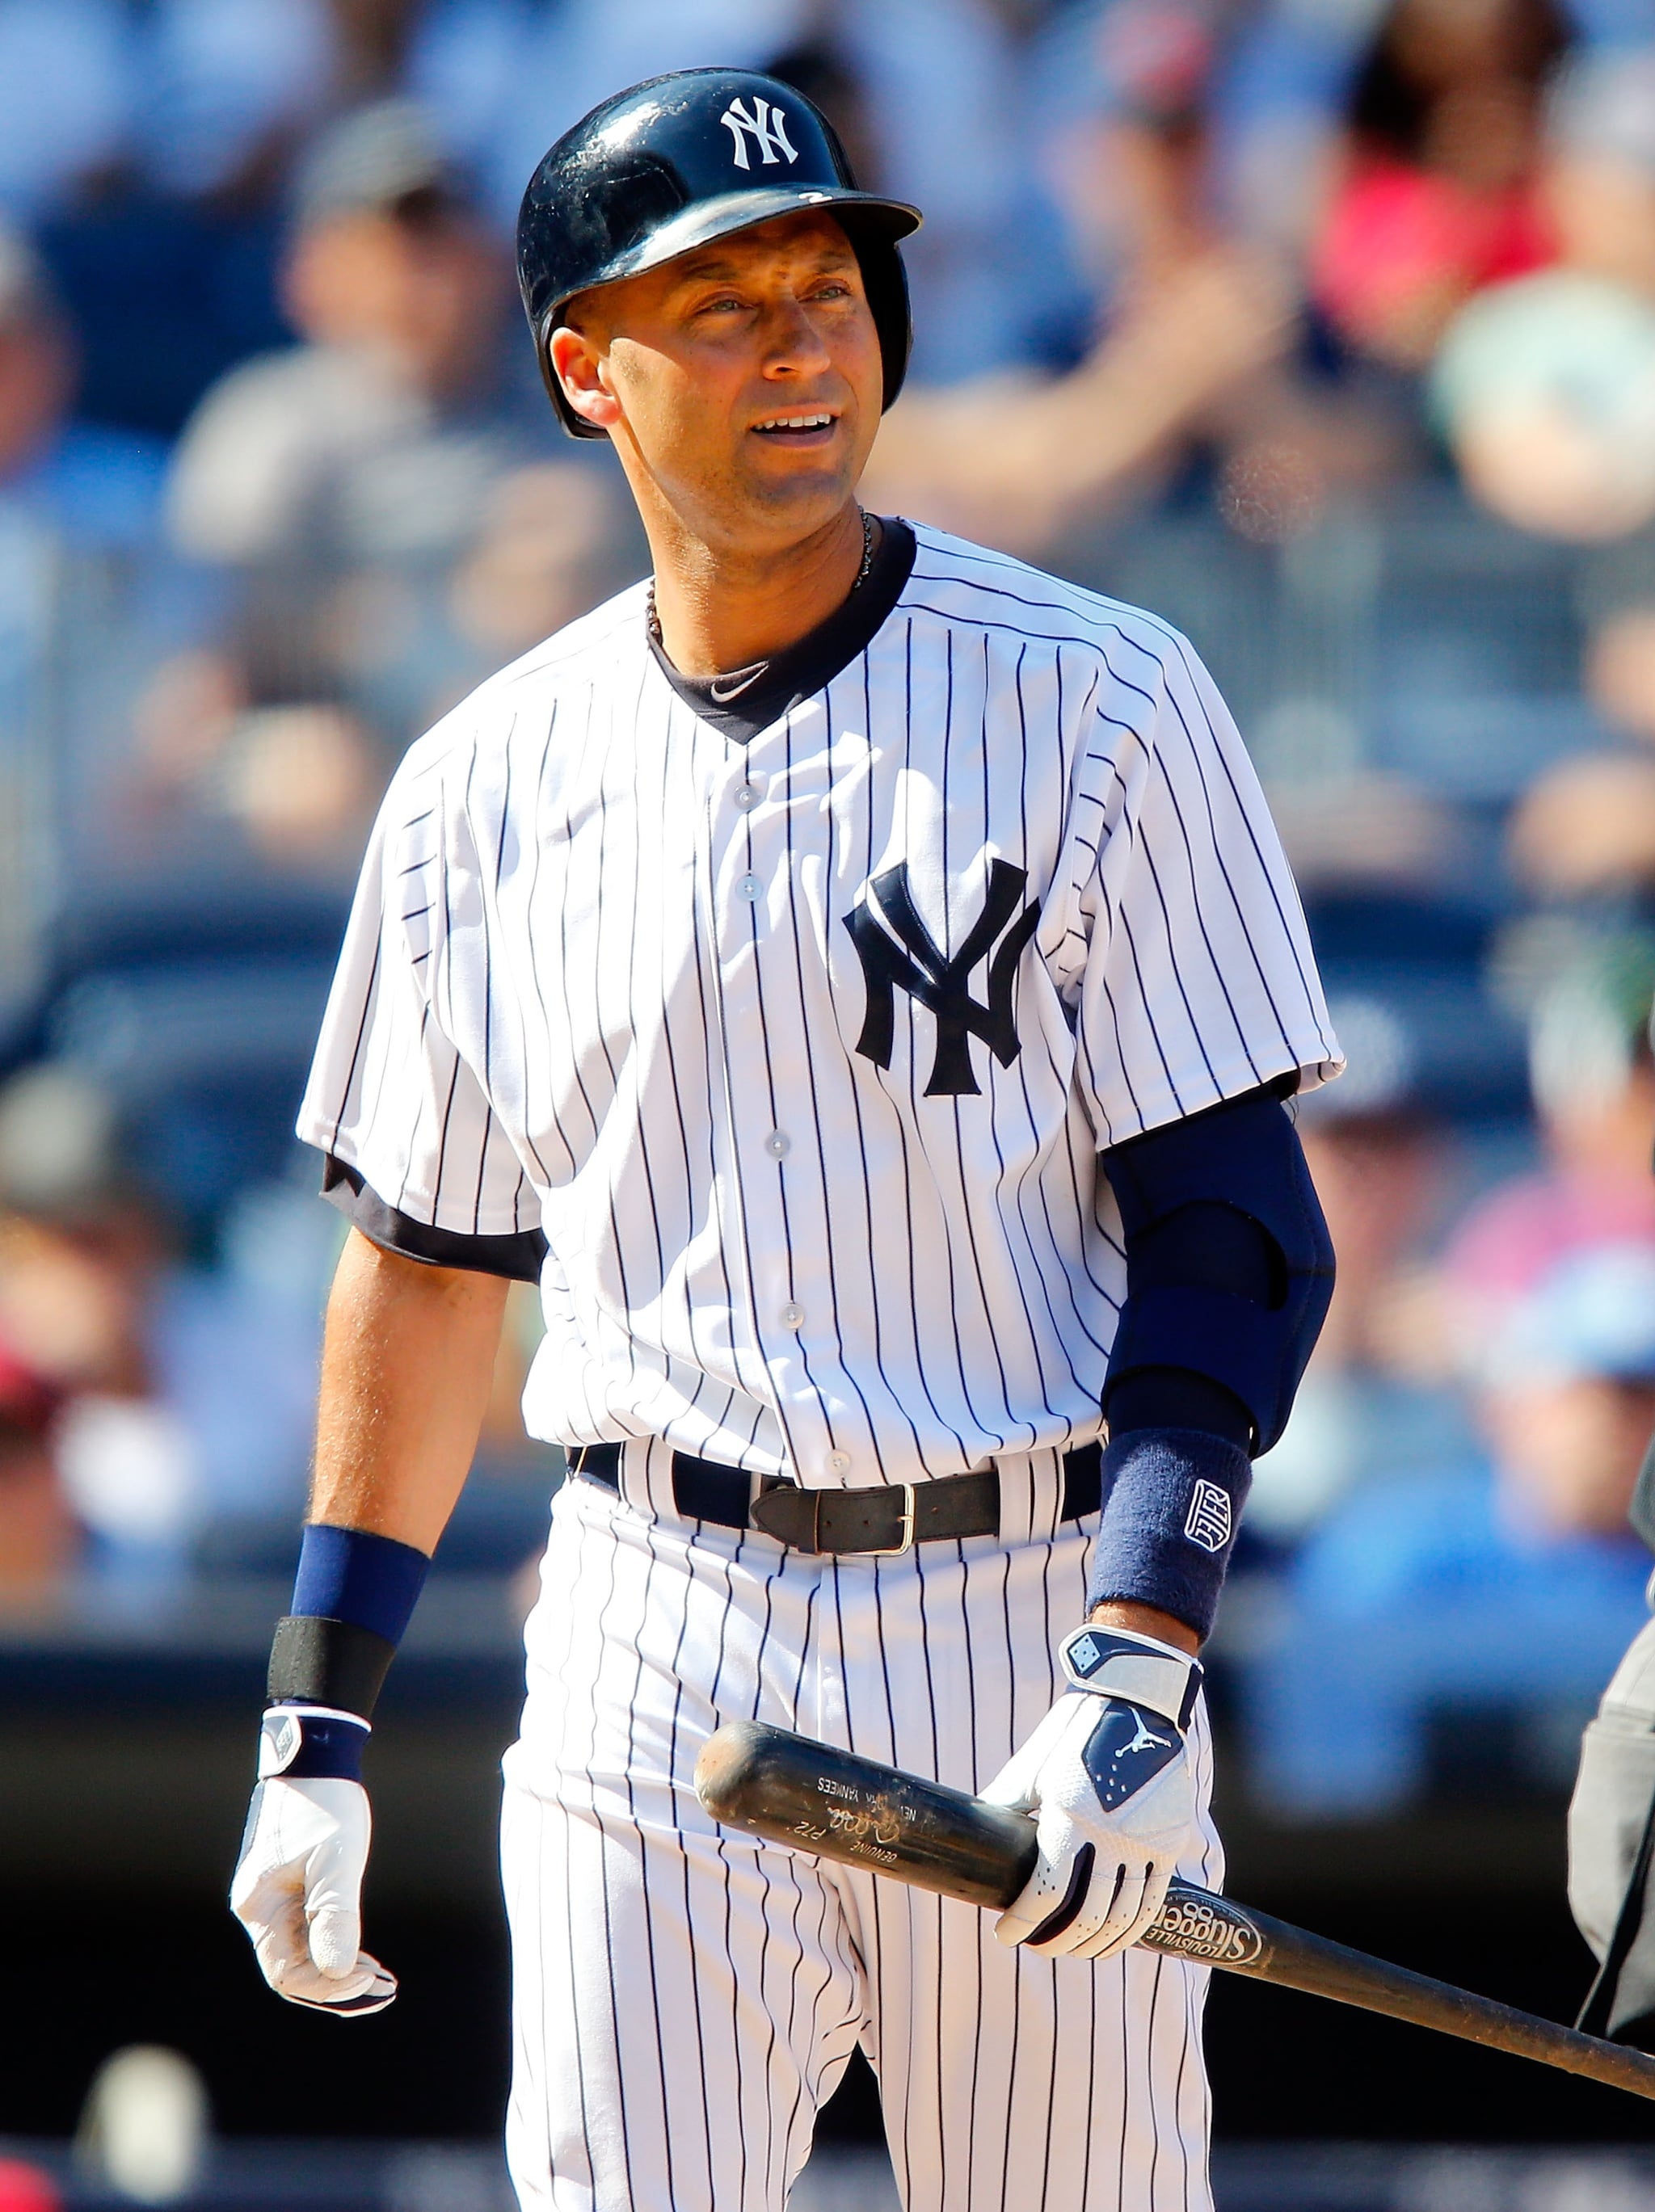 Even the Home Team Wears Pinstripes